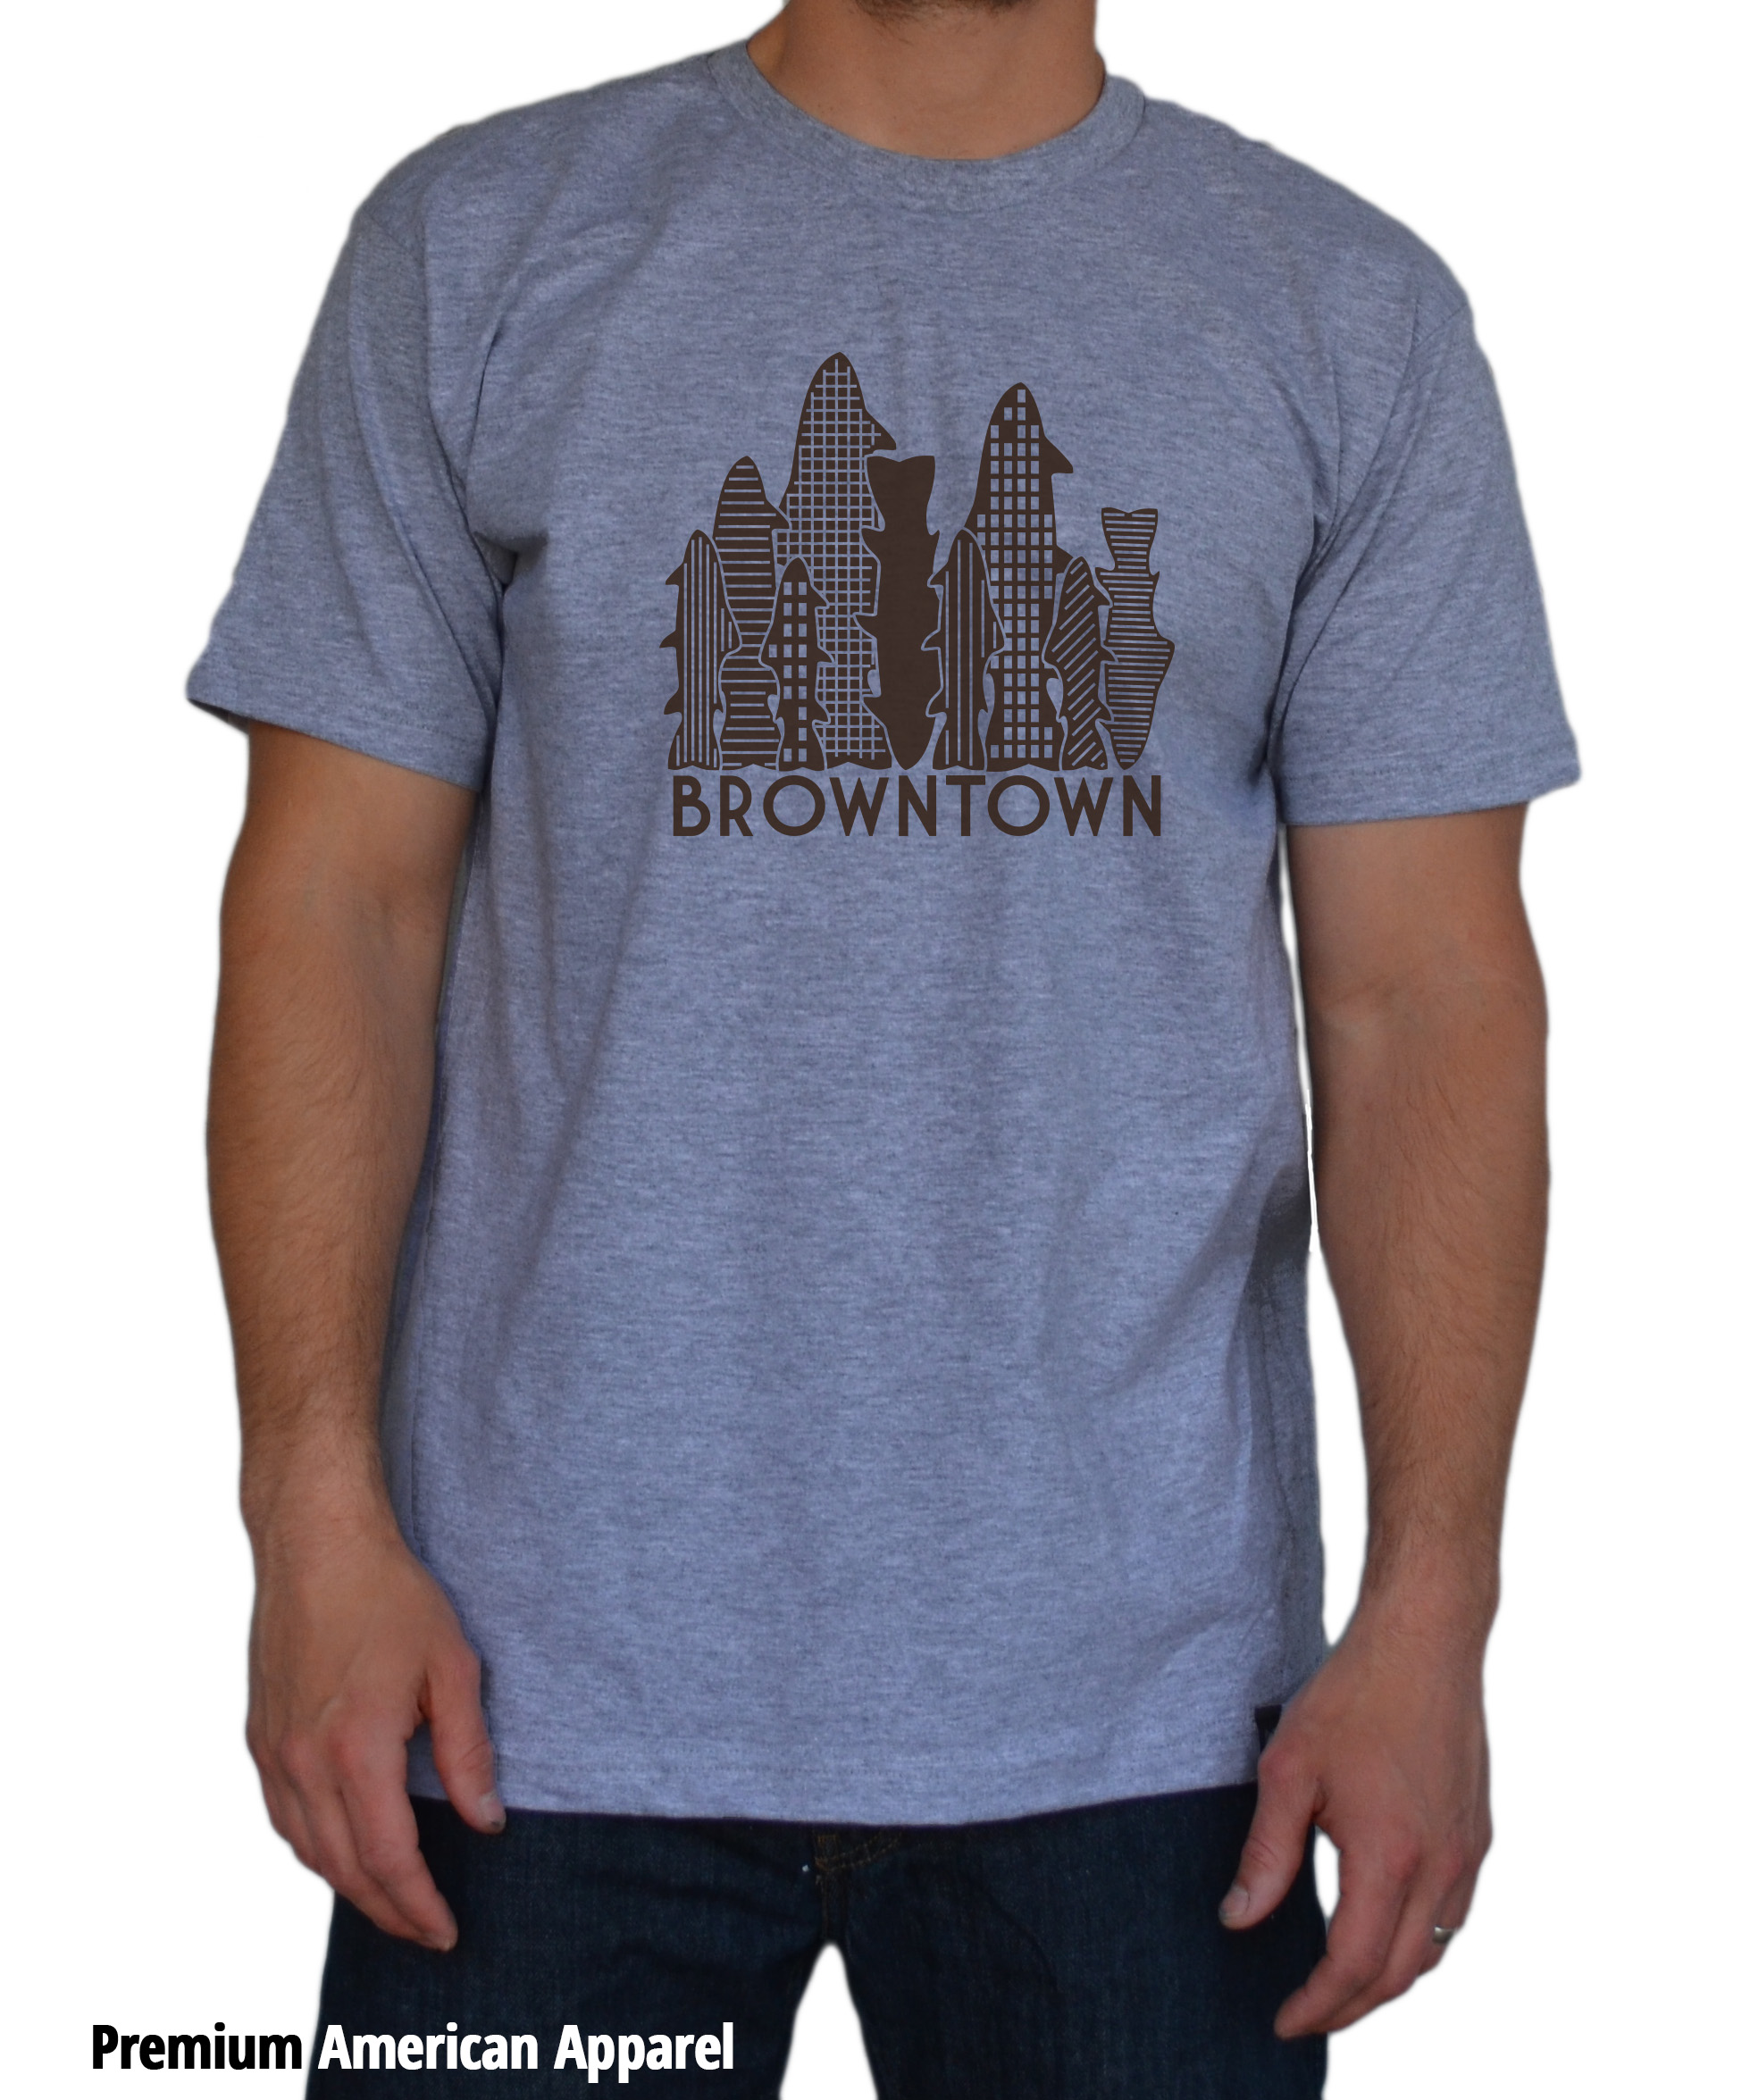 Browntown t shirt the fly trout fly fishing t shirts for Fly fishing shirt